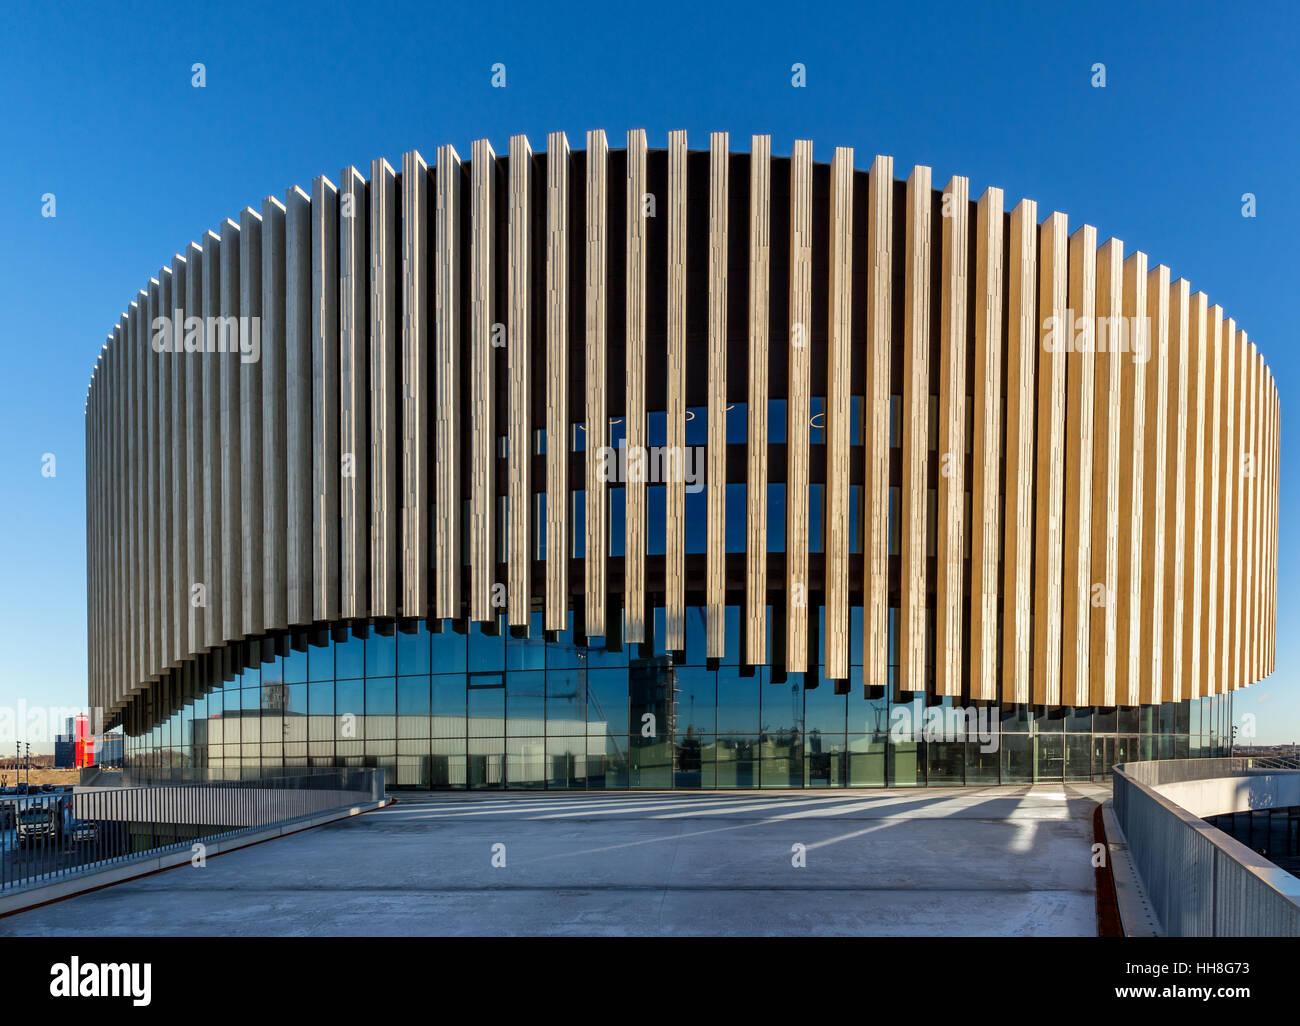 Royal Arena, une salle multi-usage, Copenhague, Danemark Photo Stock